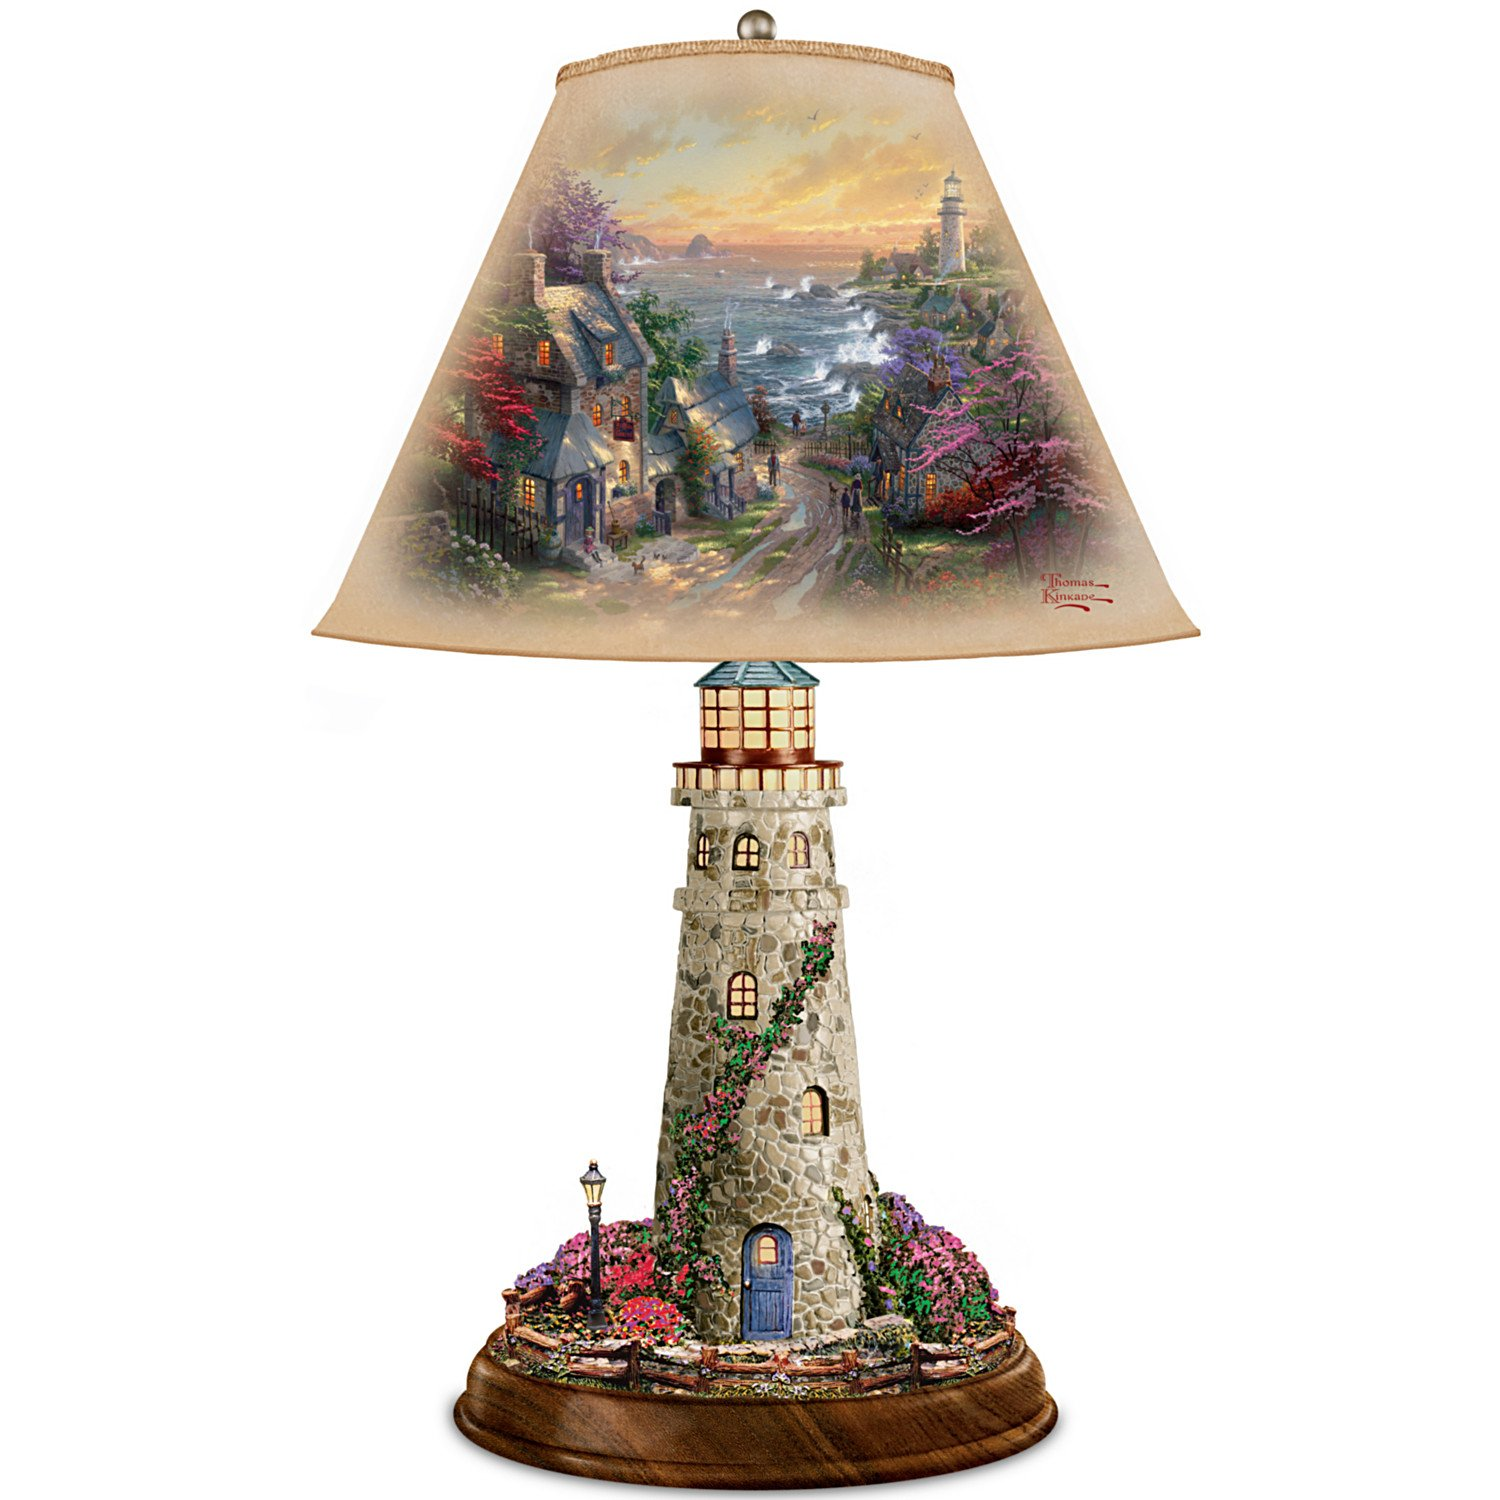 Thomas Kinkade Lamp With The Village Lighthouse Artwork On Shade And Lighthouse Base by The Bradford Exchange by Bradford Exchange (Image #1)